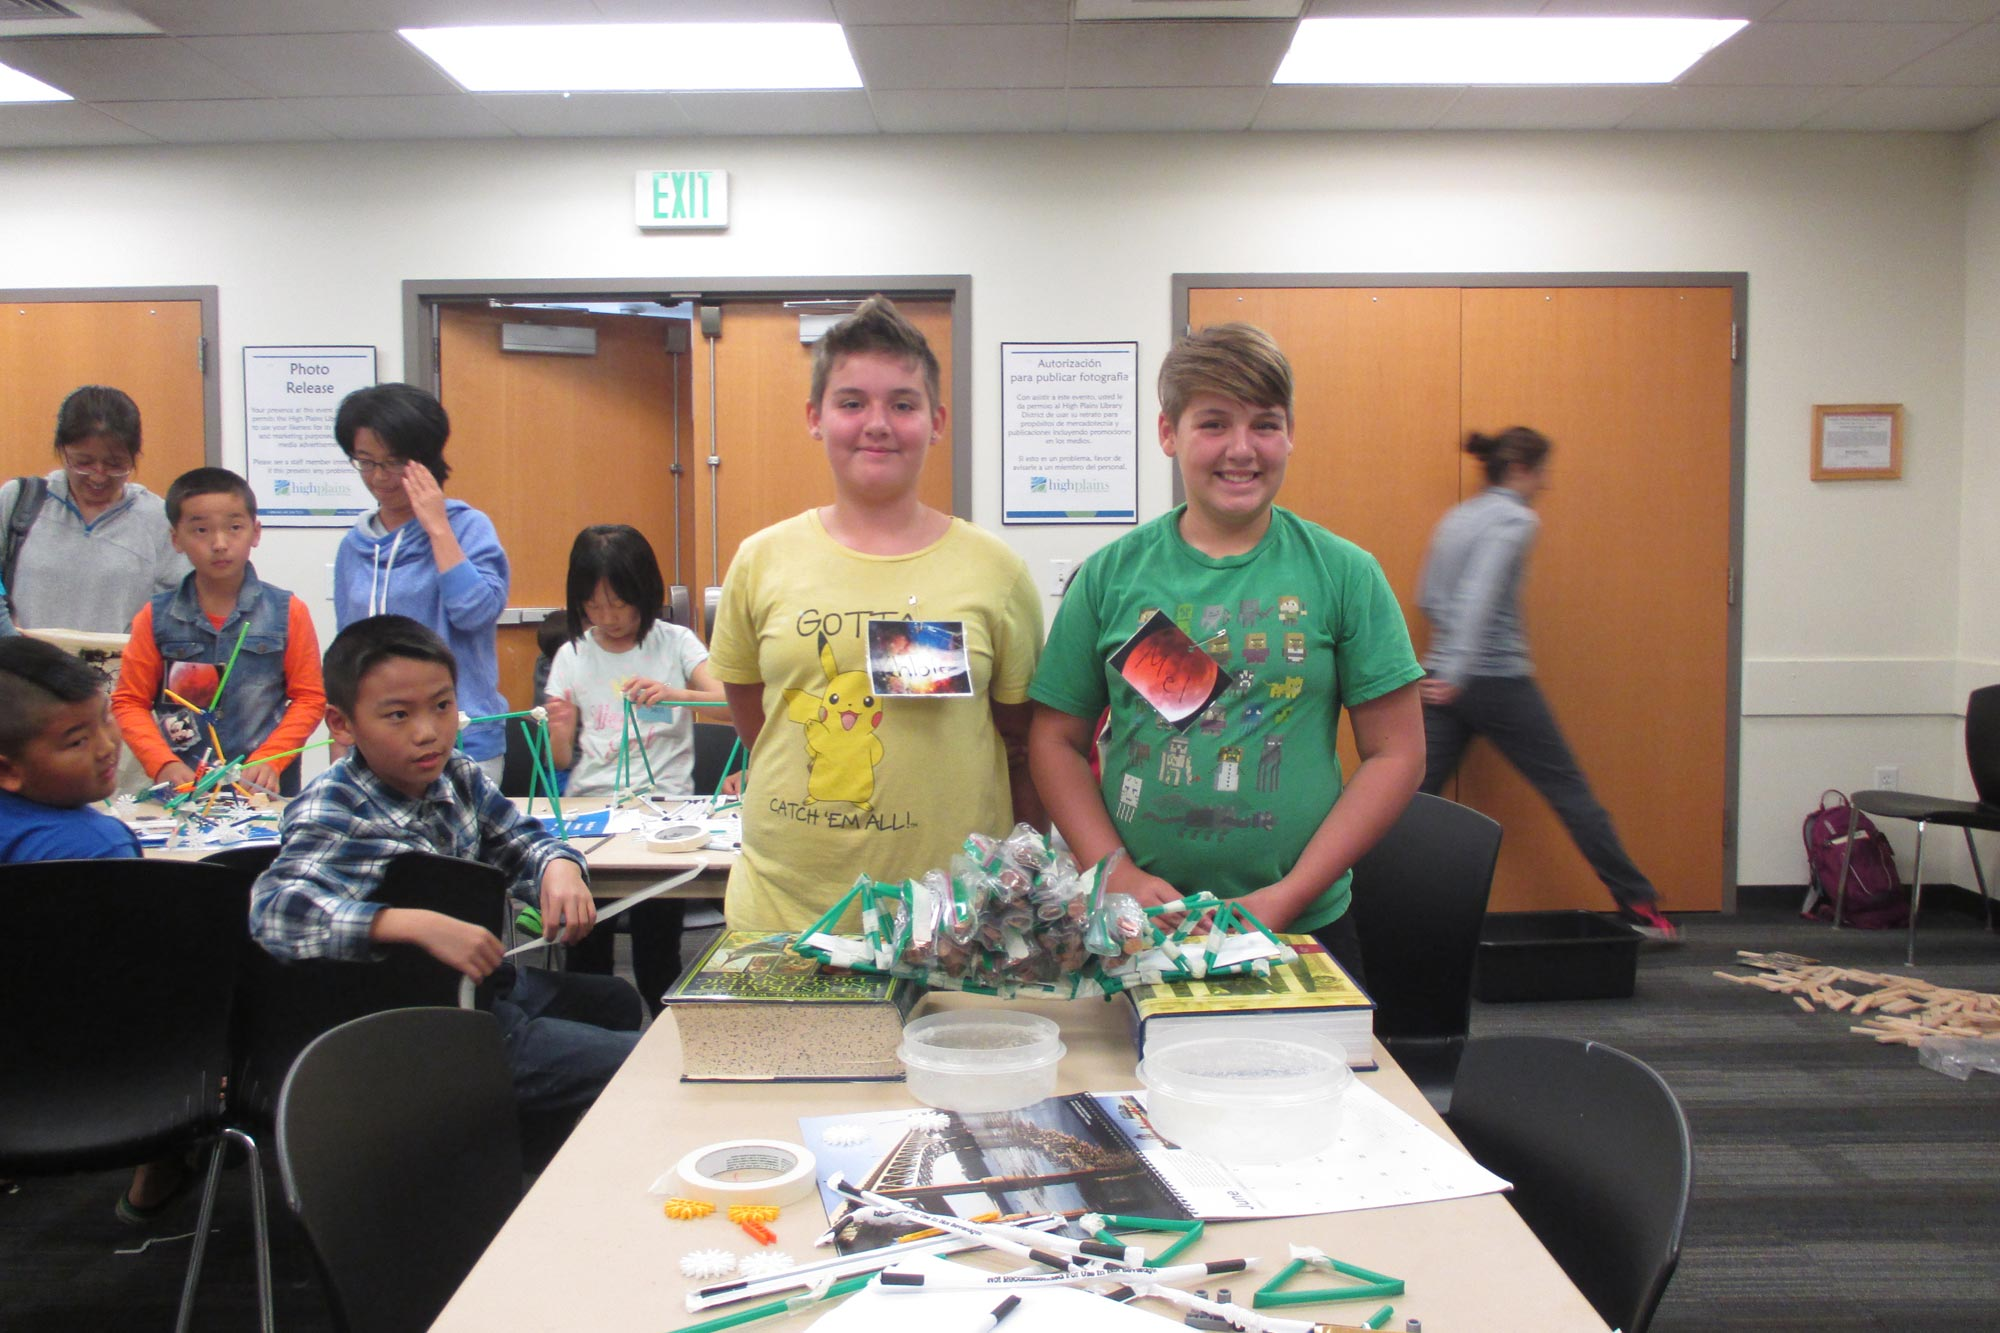 Project BUILD event at High Plains Library District